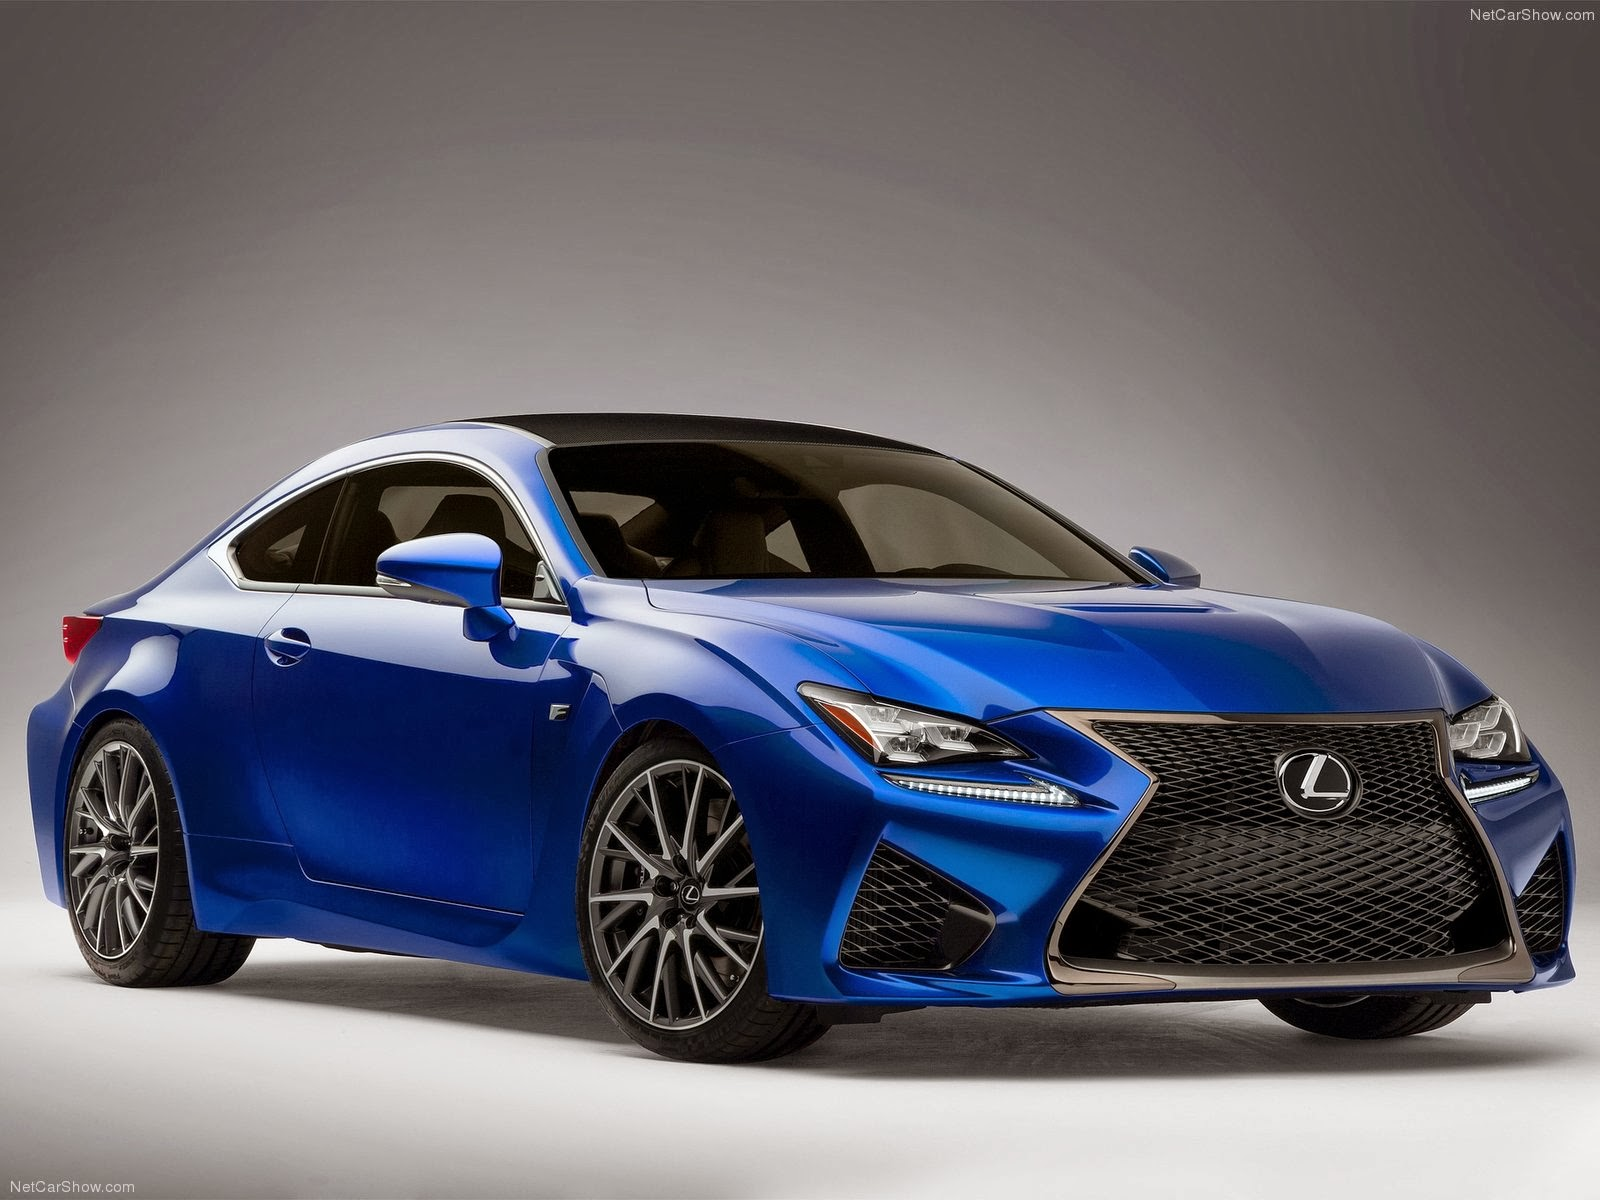 new lexus rc f is an astonishing design when it came out brand new